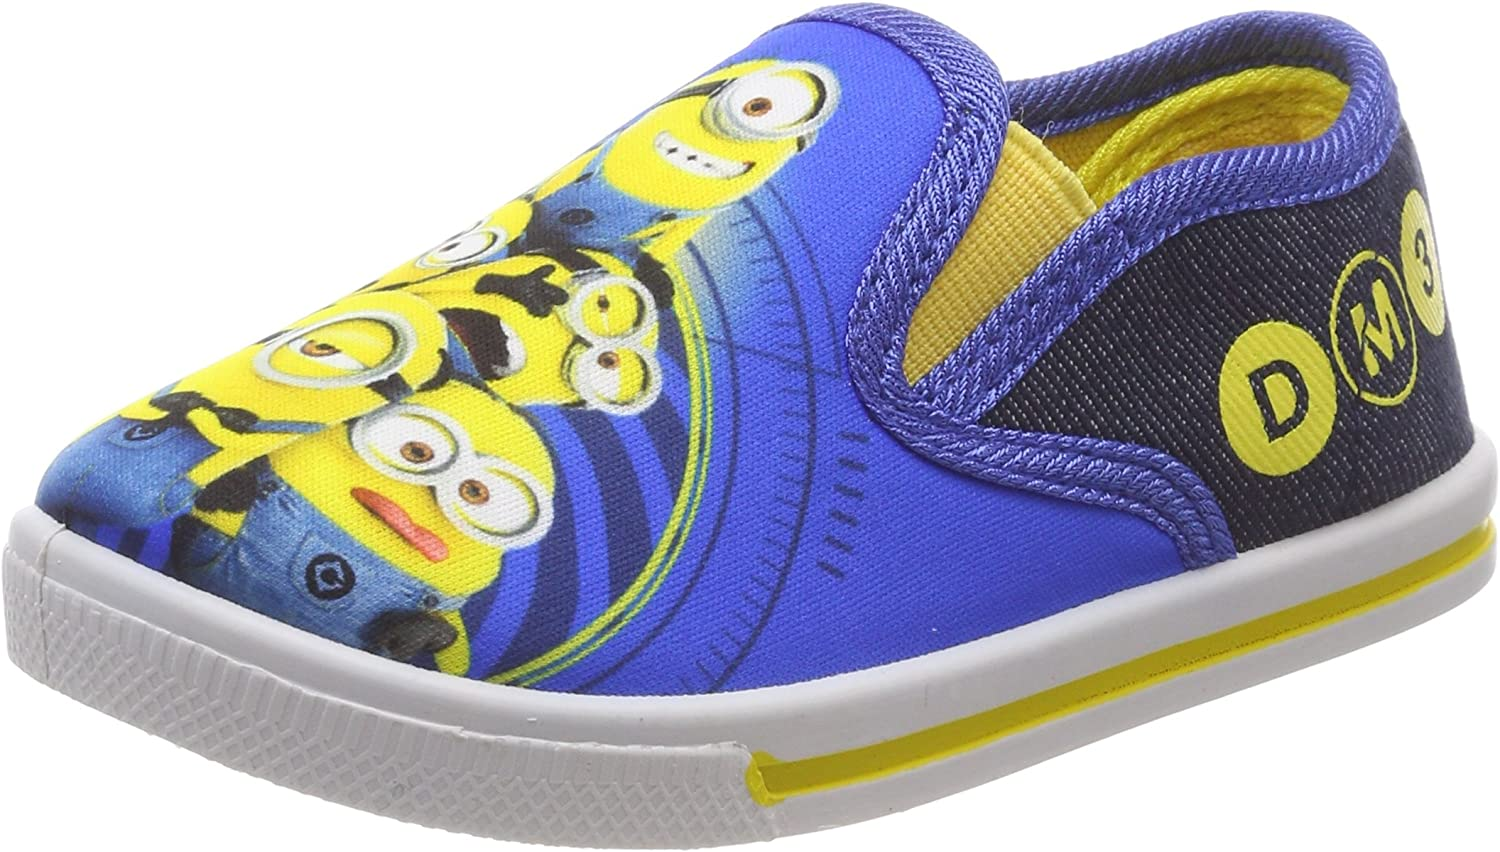 Minions Boys Kids Slipon Sneakers Slip on Trainers